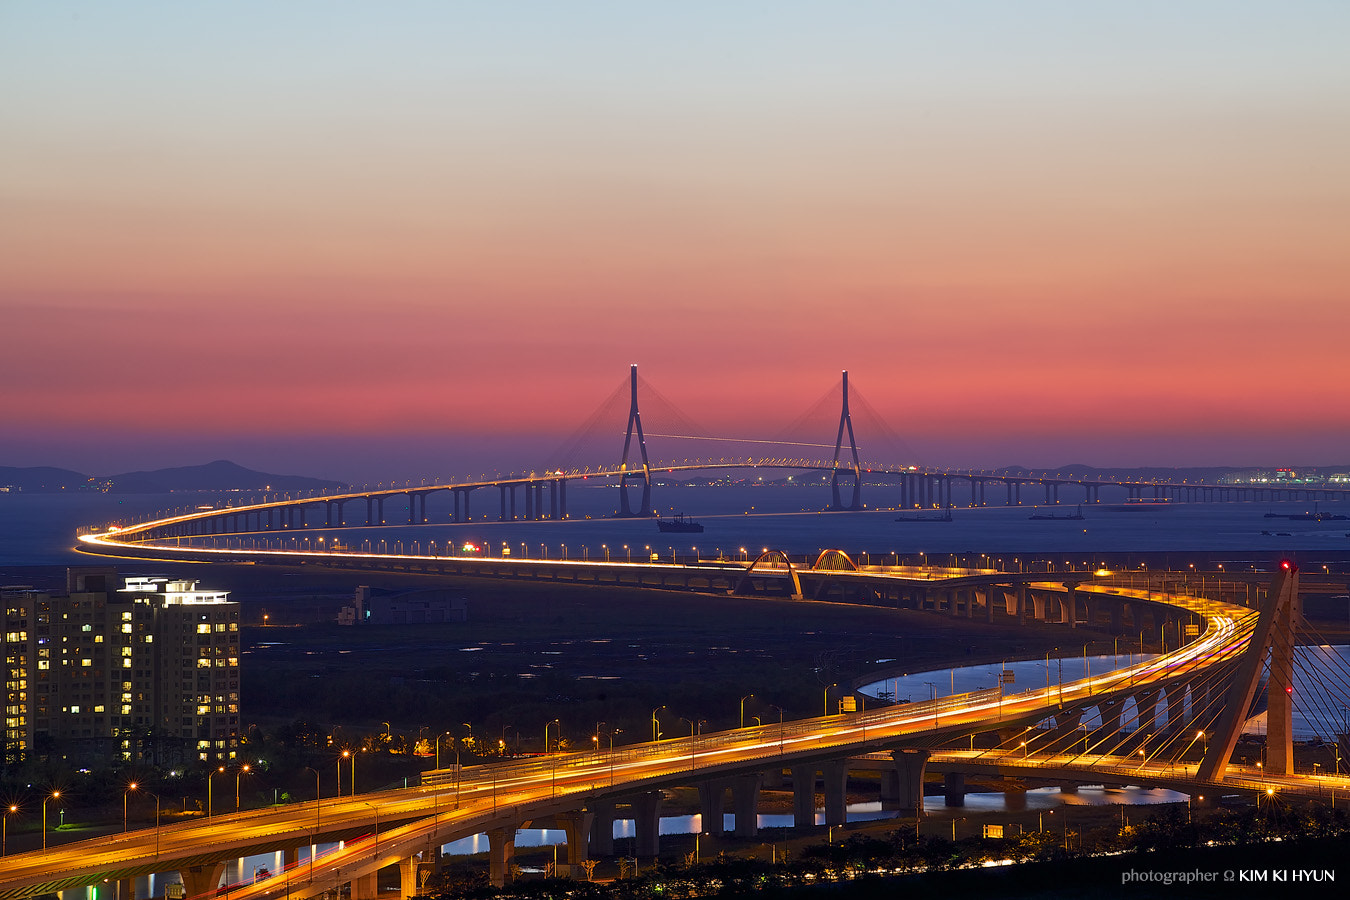 Photograph 인천대교, INCHEON Bridge by G. Nom on 500px